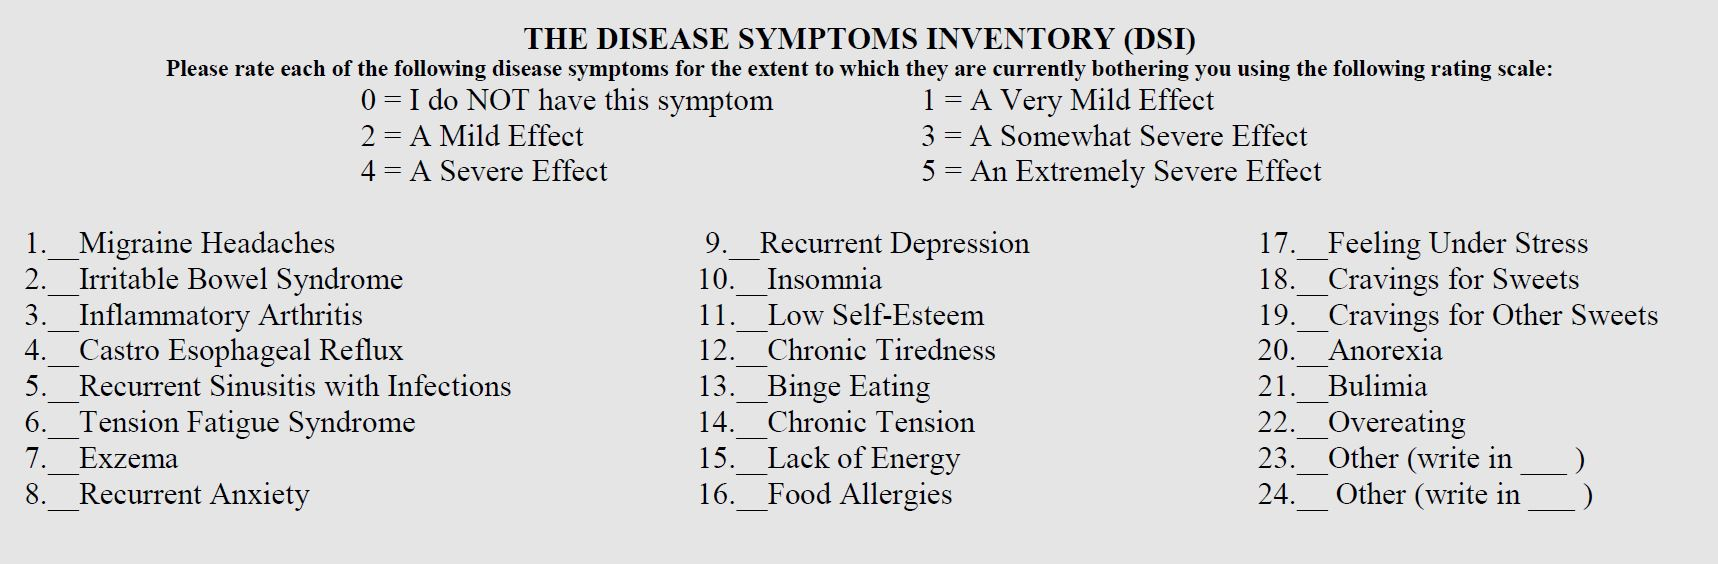 scoring sheet for disease symptoms that was used by patients in the study